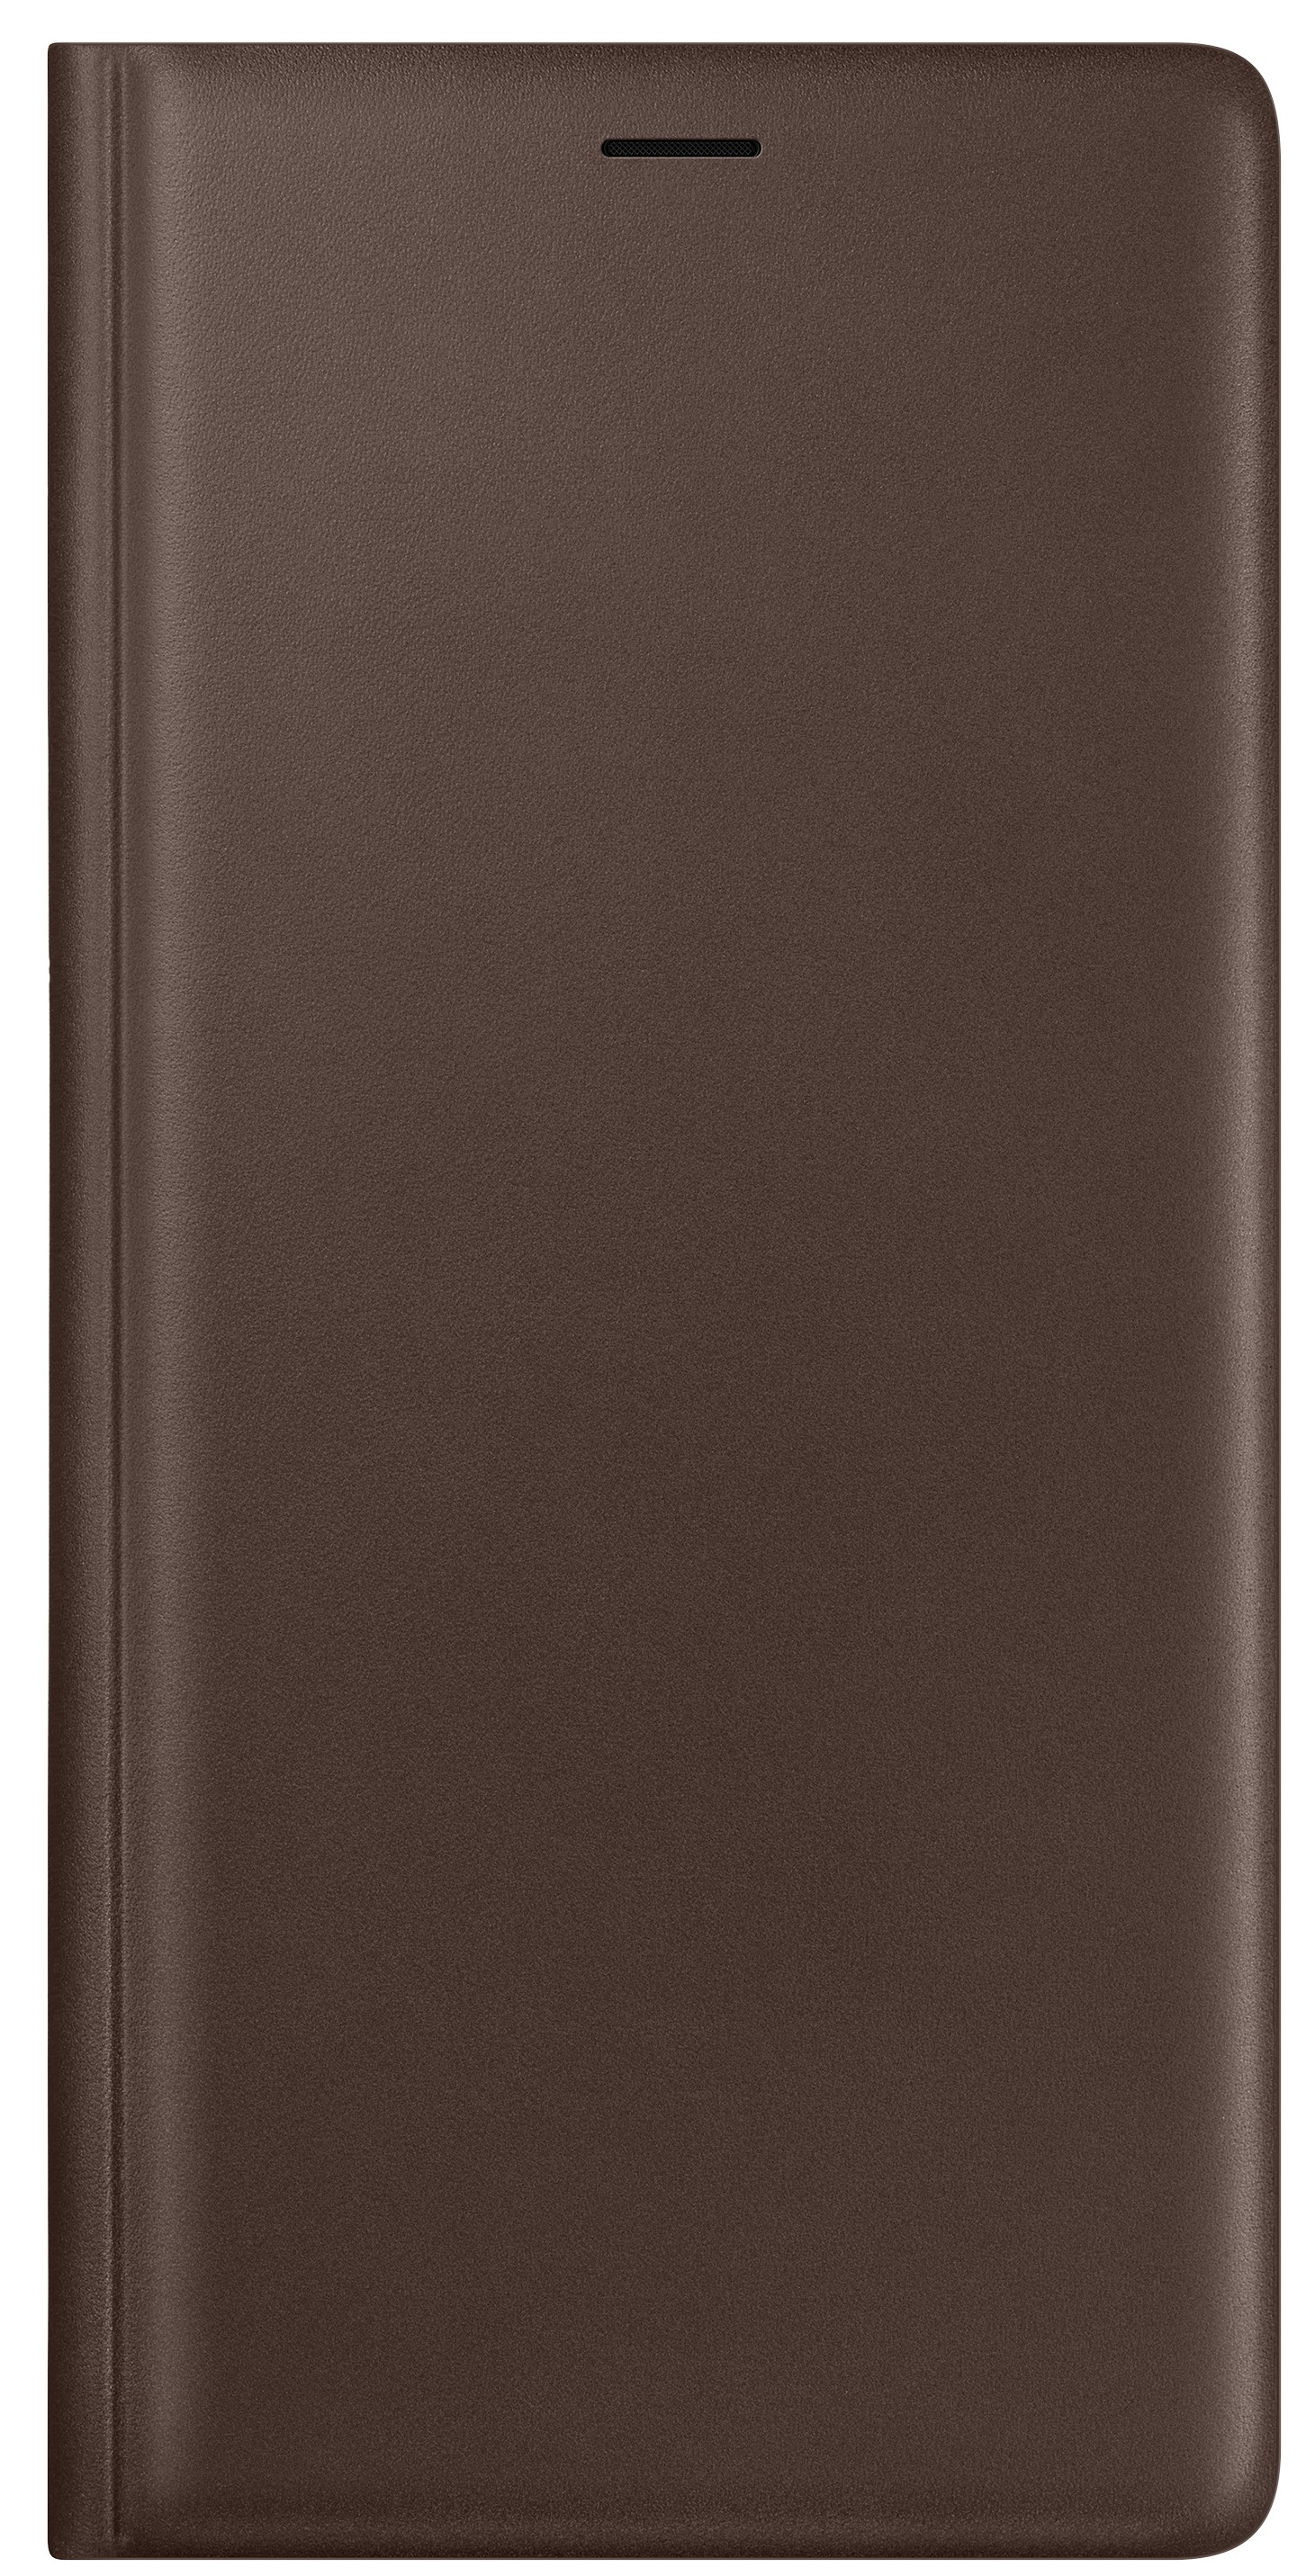 Чехол-книжка Samsung для Galaxy Note 9 EF-WN960LAEGRU Wallet Cover Crown brown enkay flip open pu plastic case w stand card slots for samsung galaxy note 4 n9100 brown